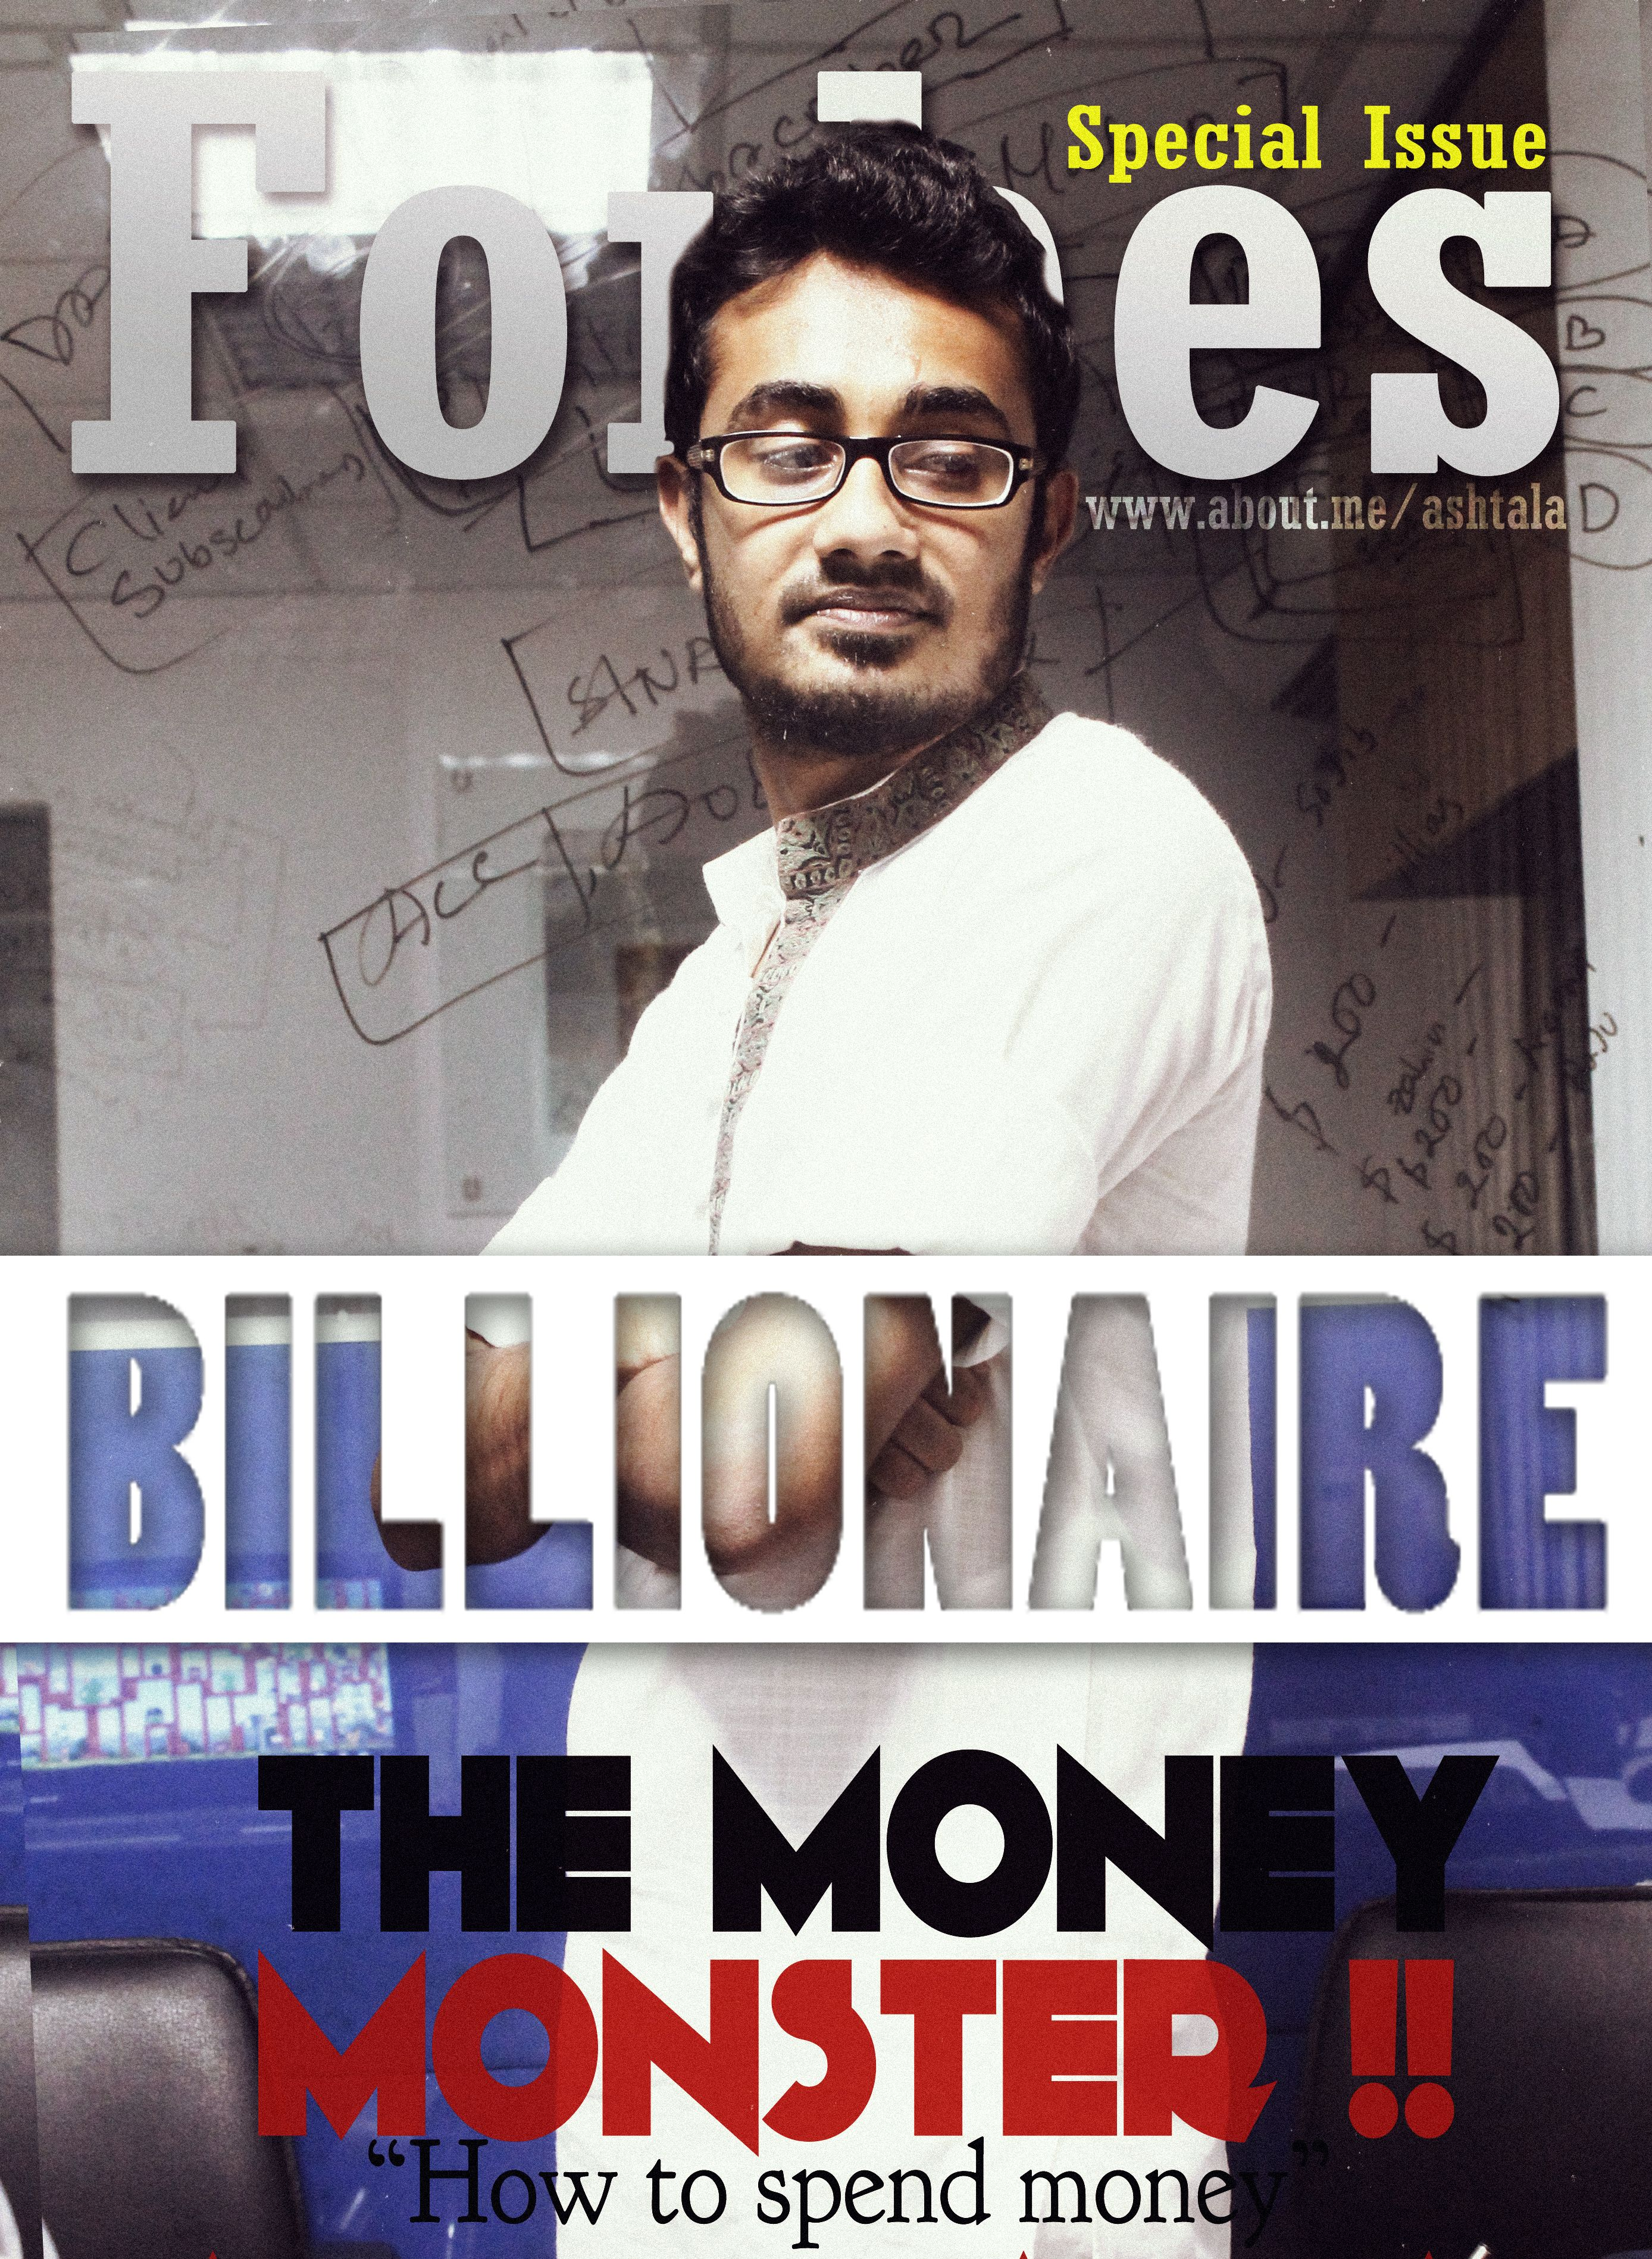 FORBES | Special Issue  #fashion #photography #design #Illustration #forbes #billionaire #Ashtala #forbesmagazine #cover #front #proudBangladesi #BrunoMars #monster #money #specialissue #Bangladeshi #fashion #magazine